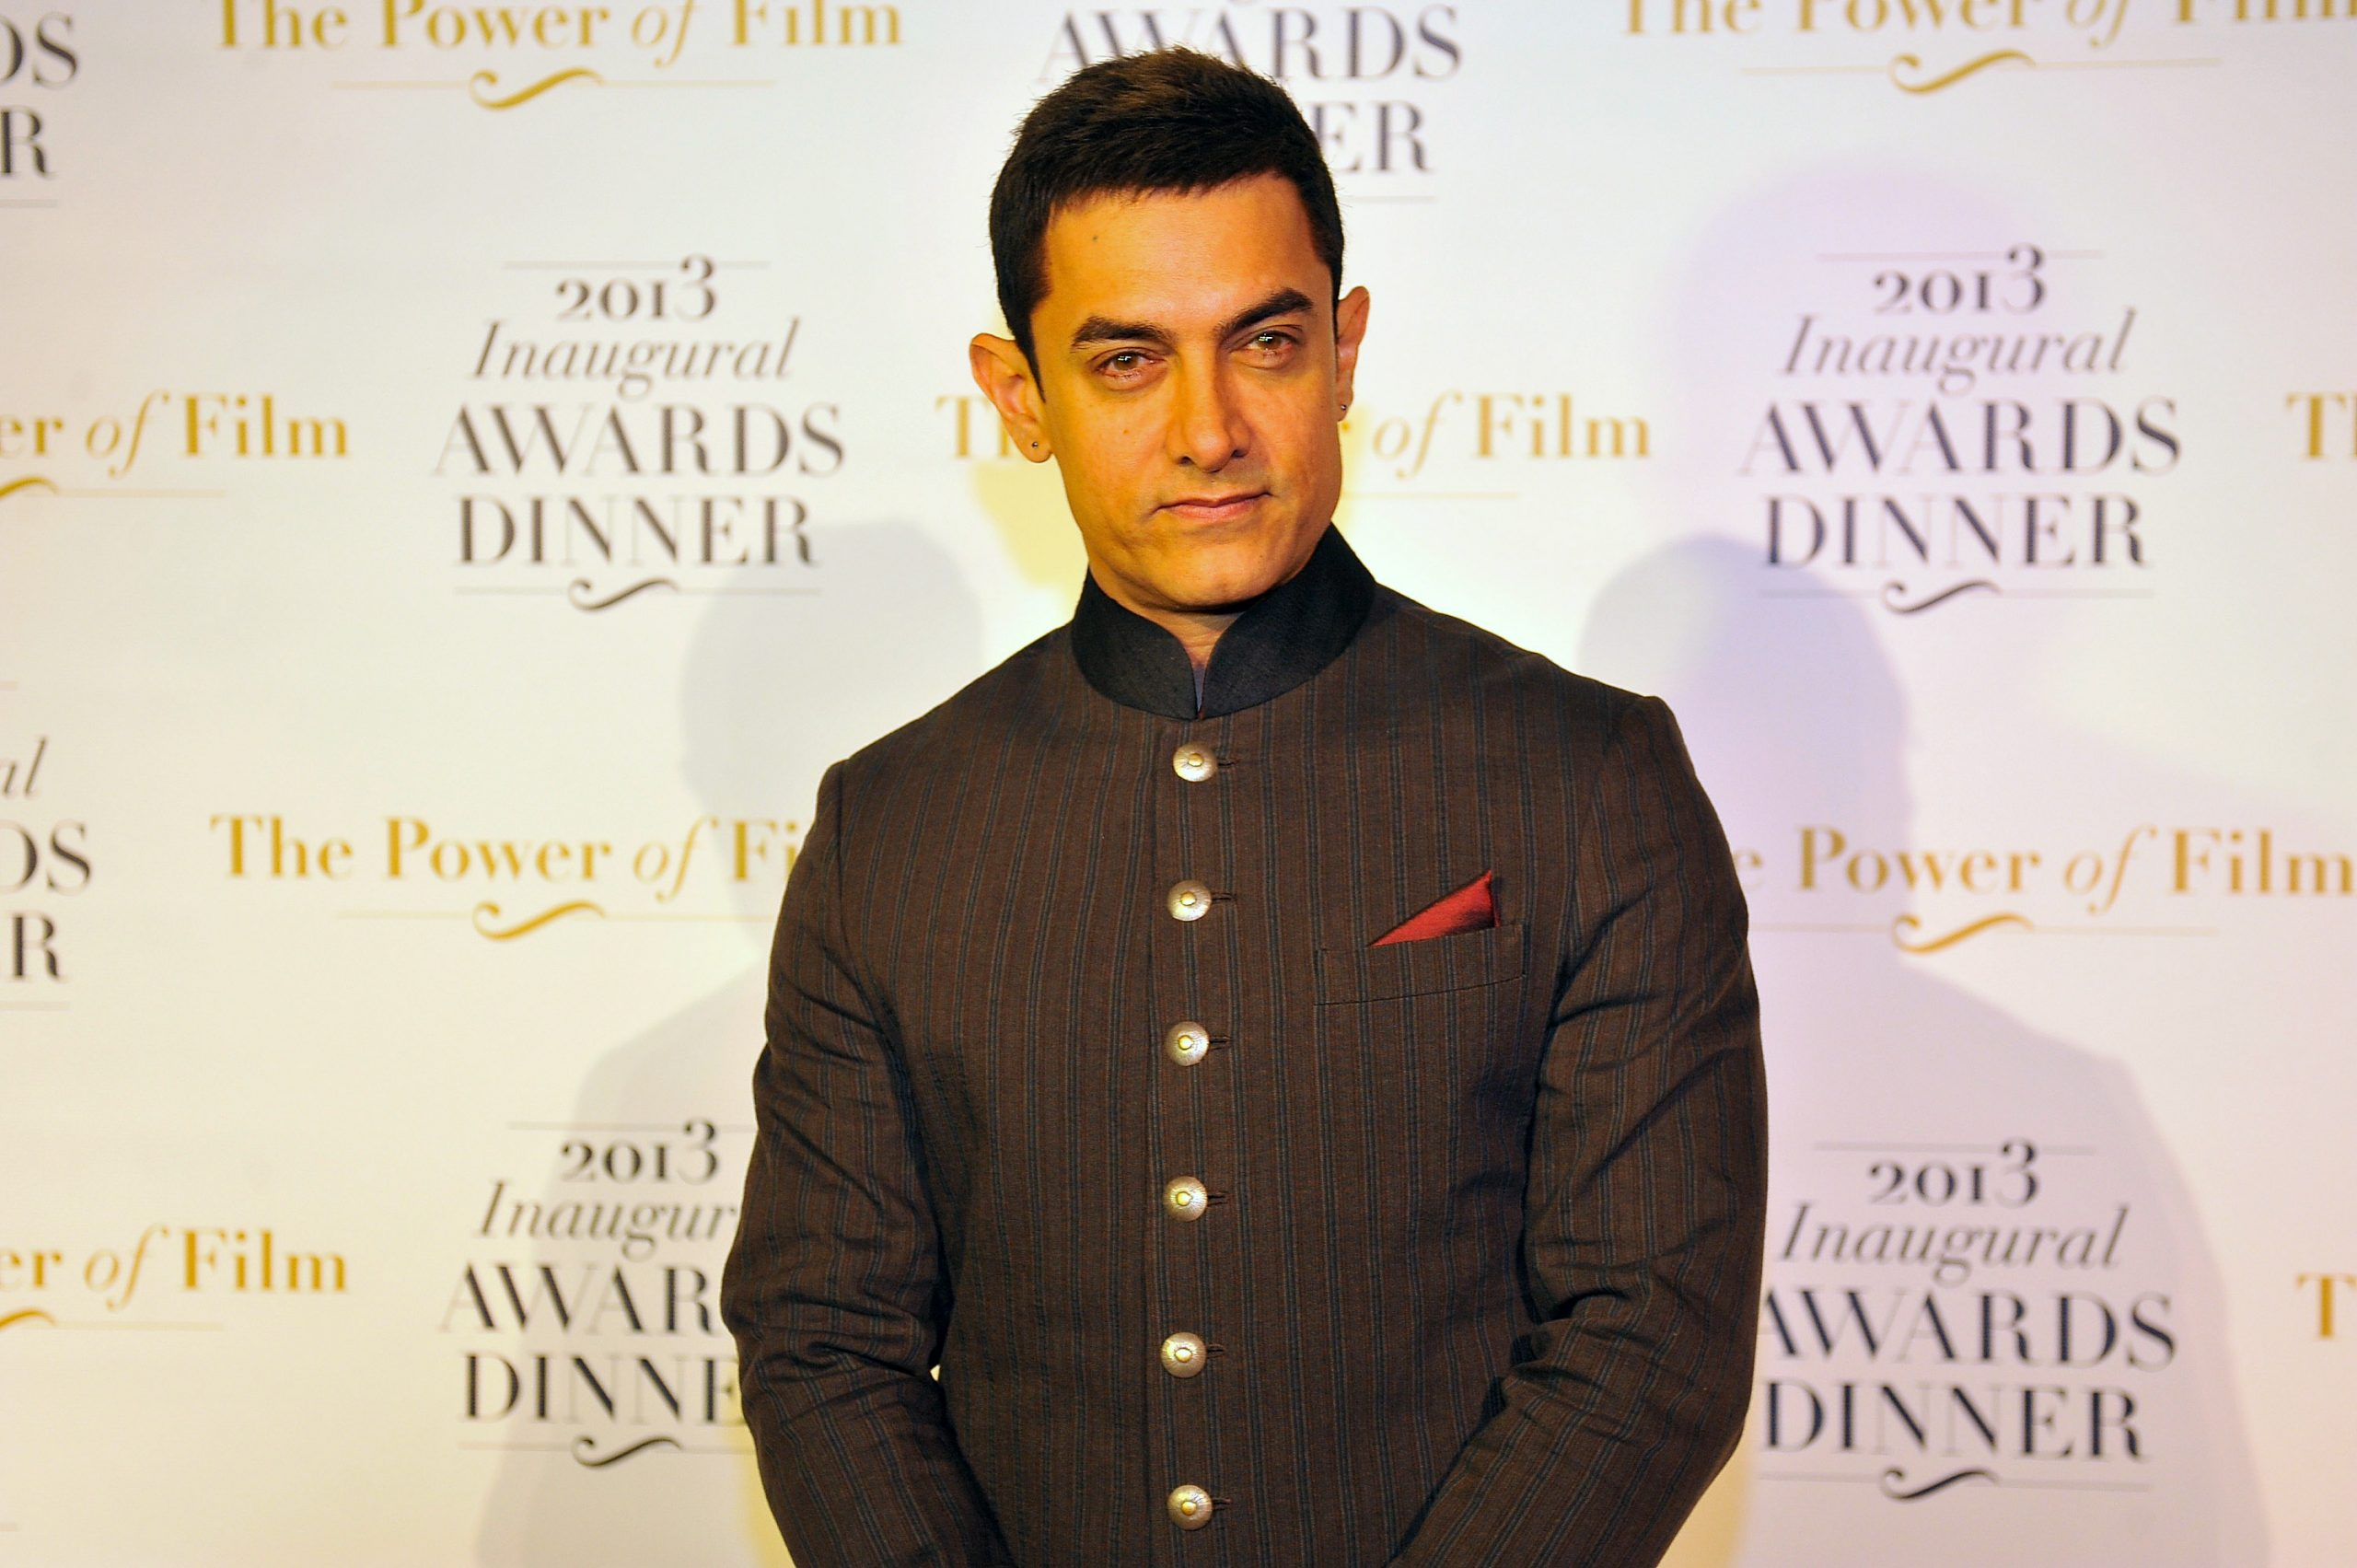 Aamir Khan (Photo by Larry French/Getty Images)